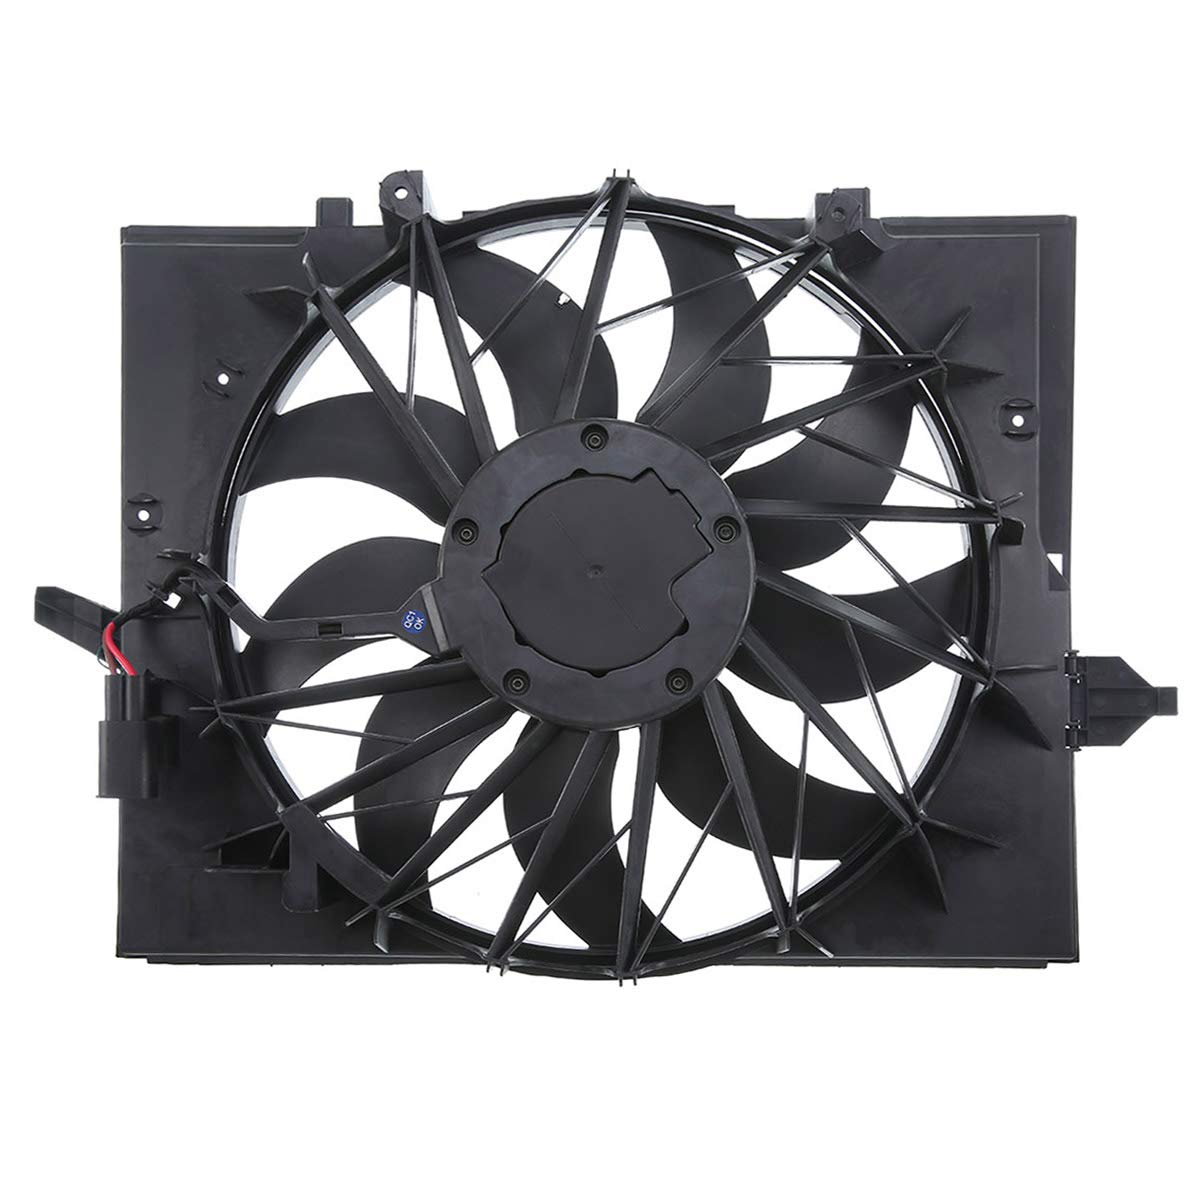 A-Premium Radiator Cooling Fan Assembly for BMW E60 E61 E63 E65 5 7 Series 525i 525xi 528i 530i 530xi 545i 645 Ci 750i 750Li